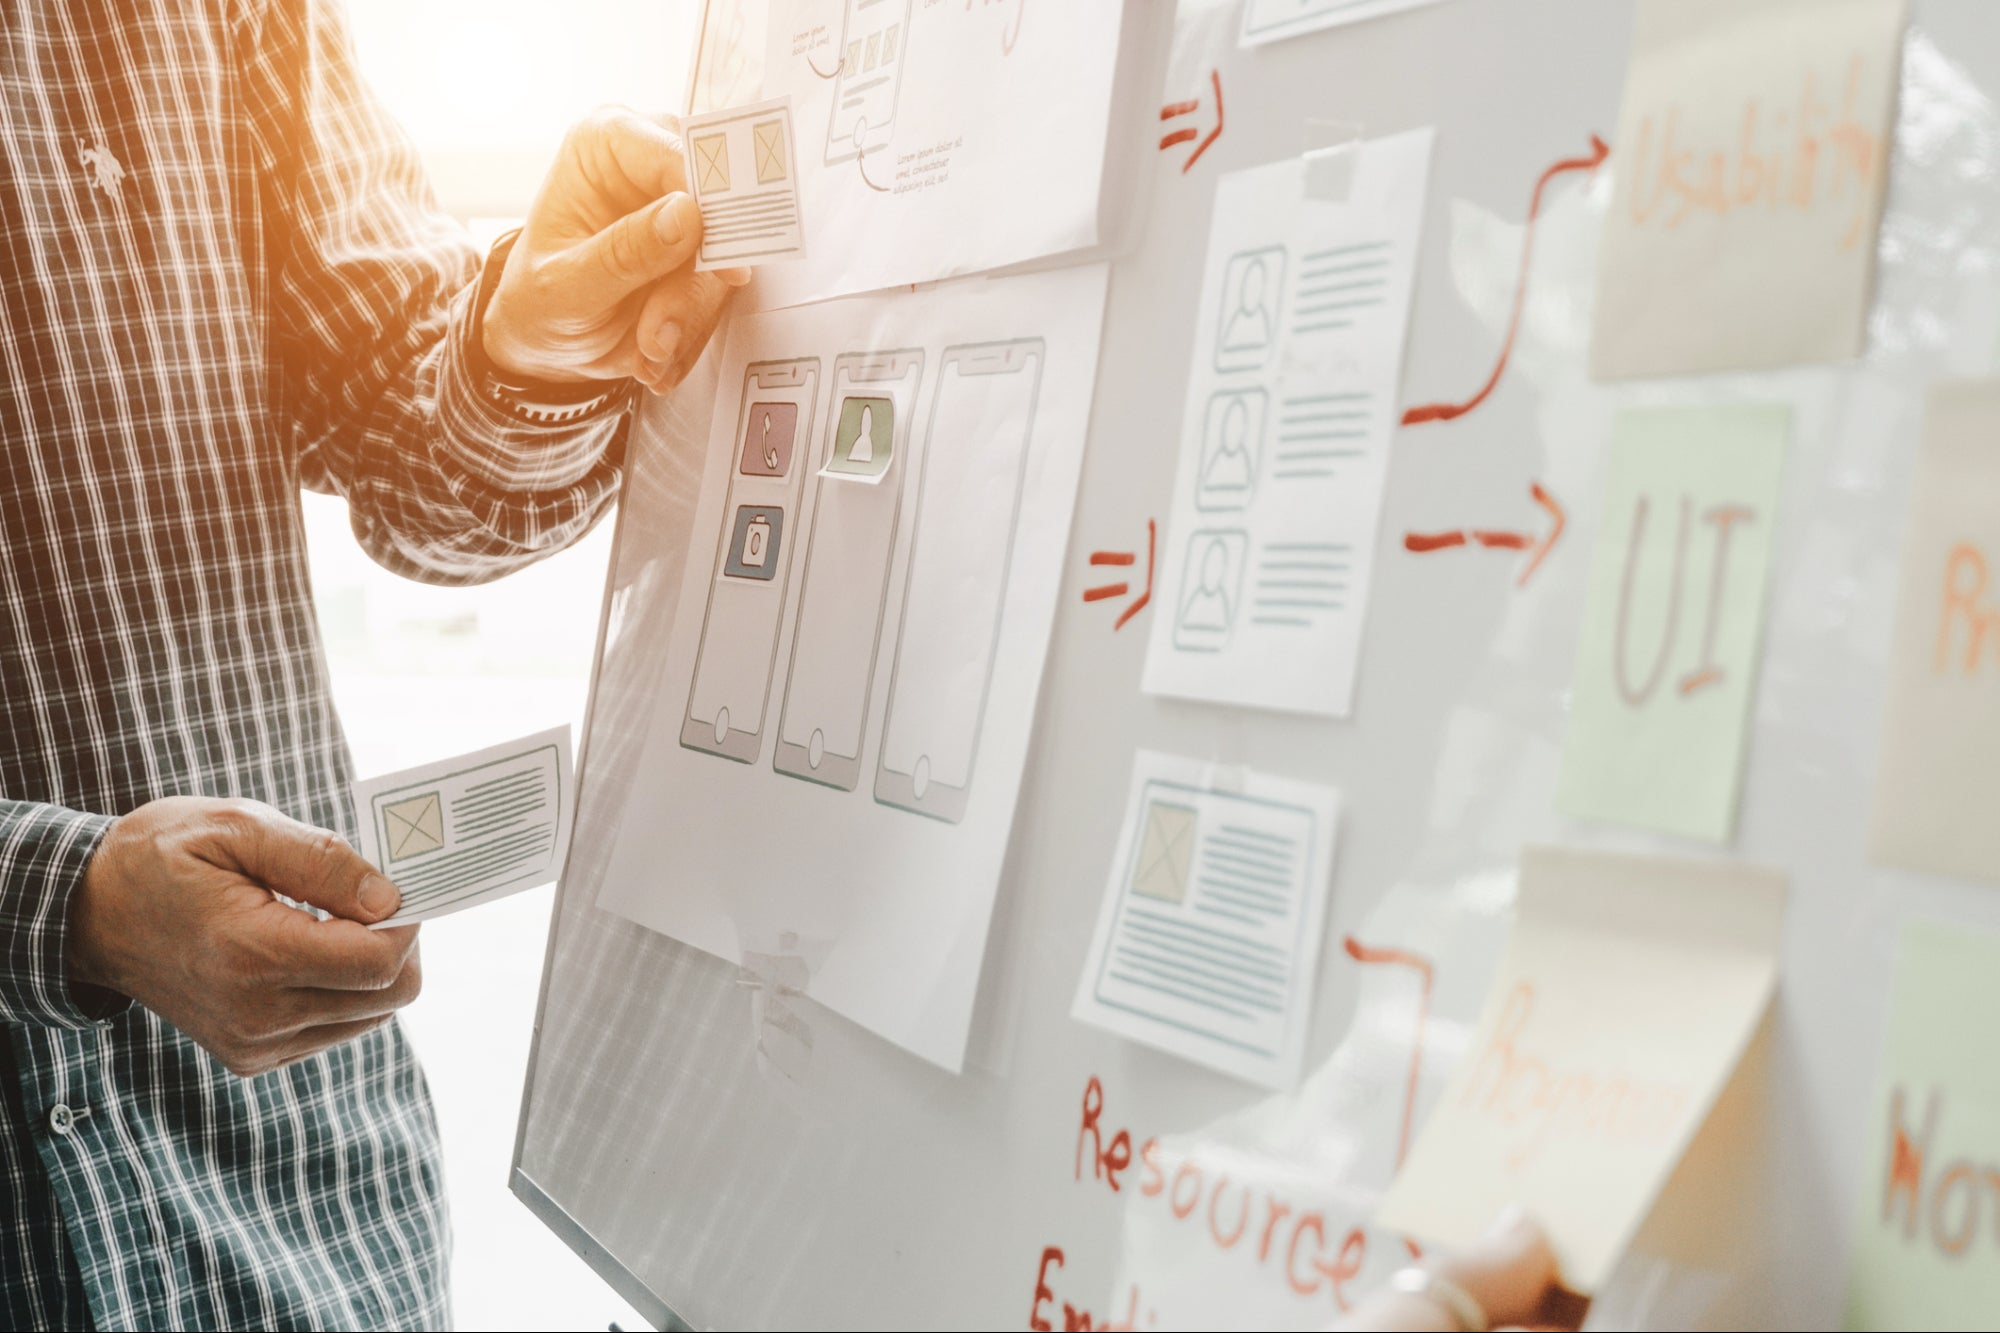 5 Signs Your Startup App Idea Isn't Ready For Development Yet